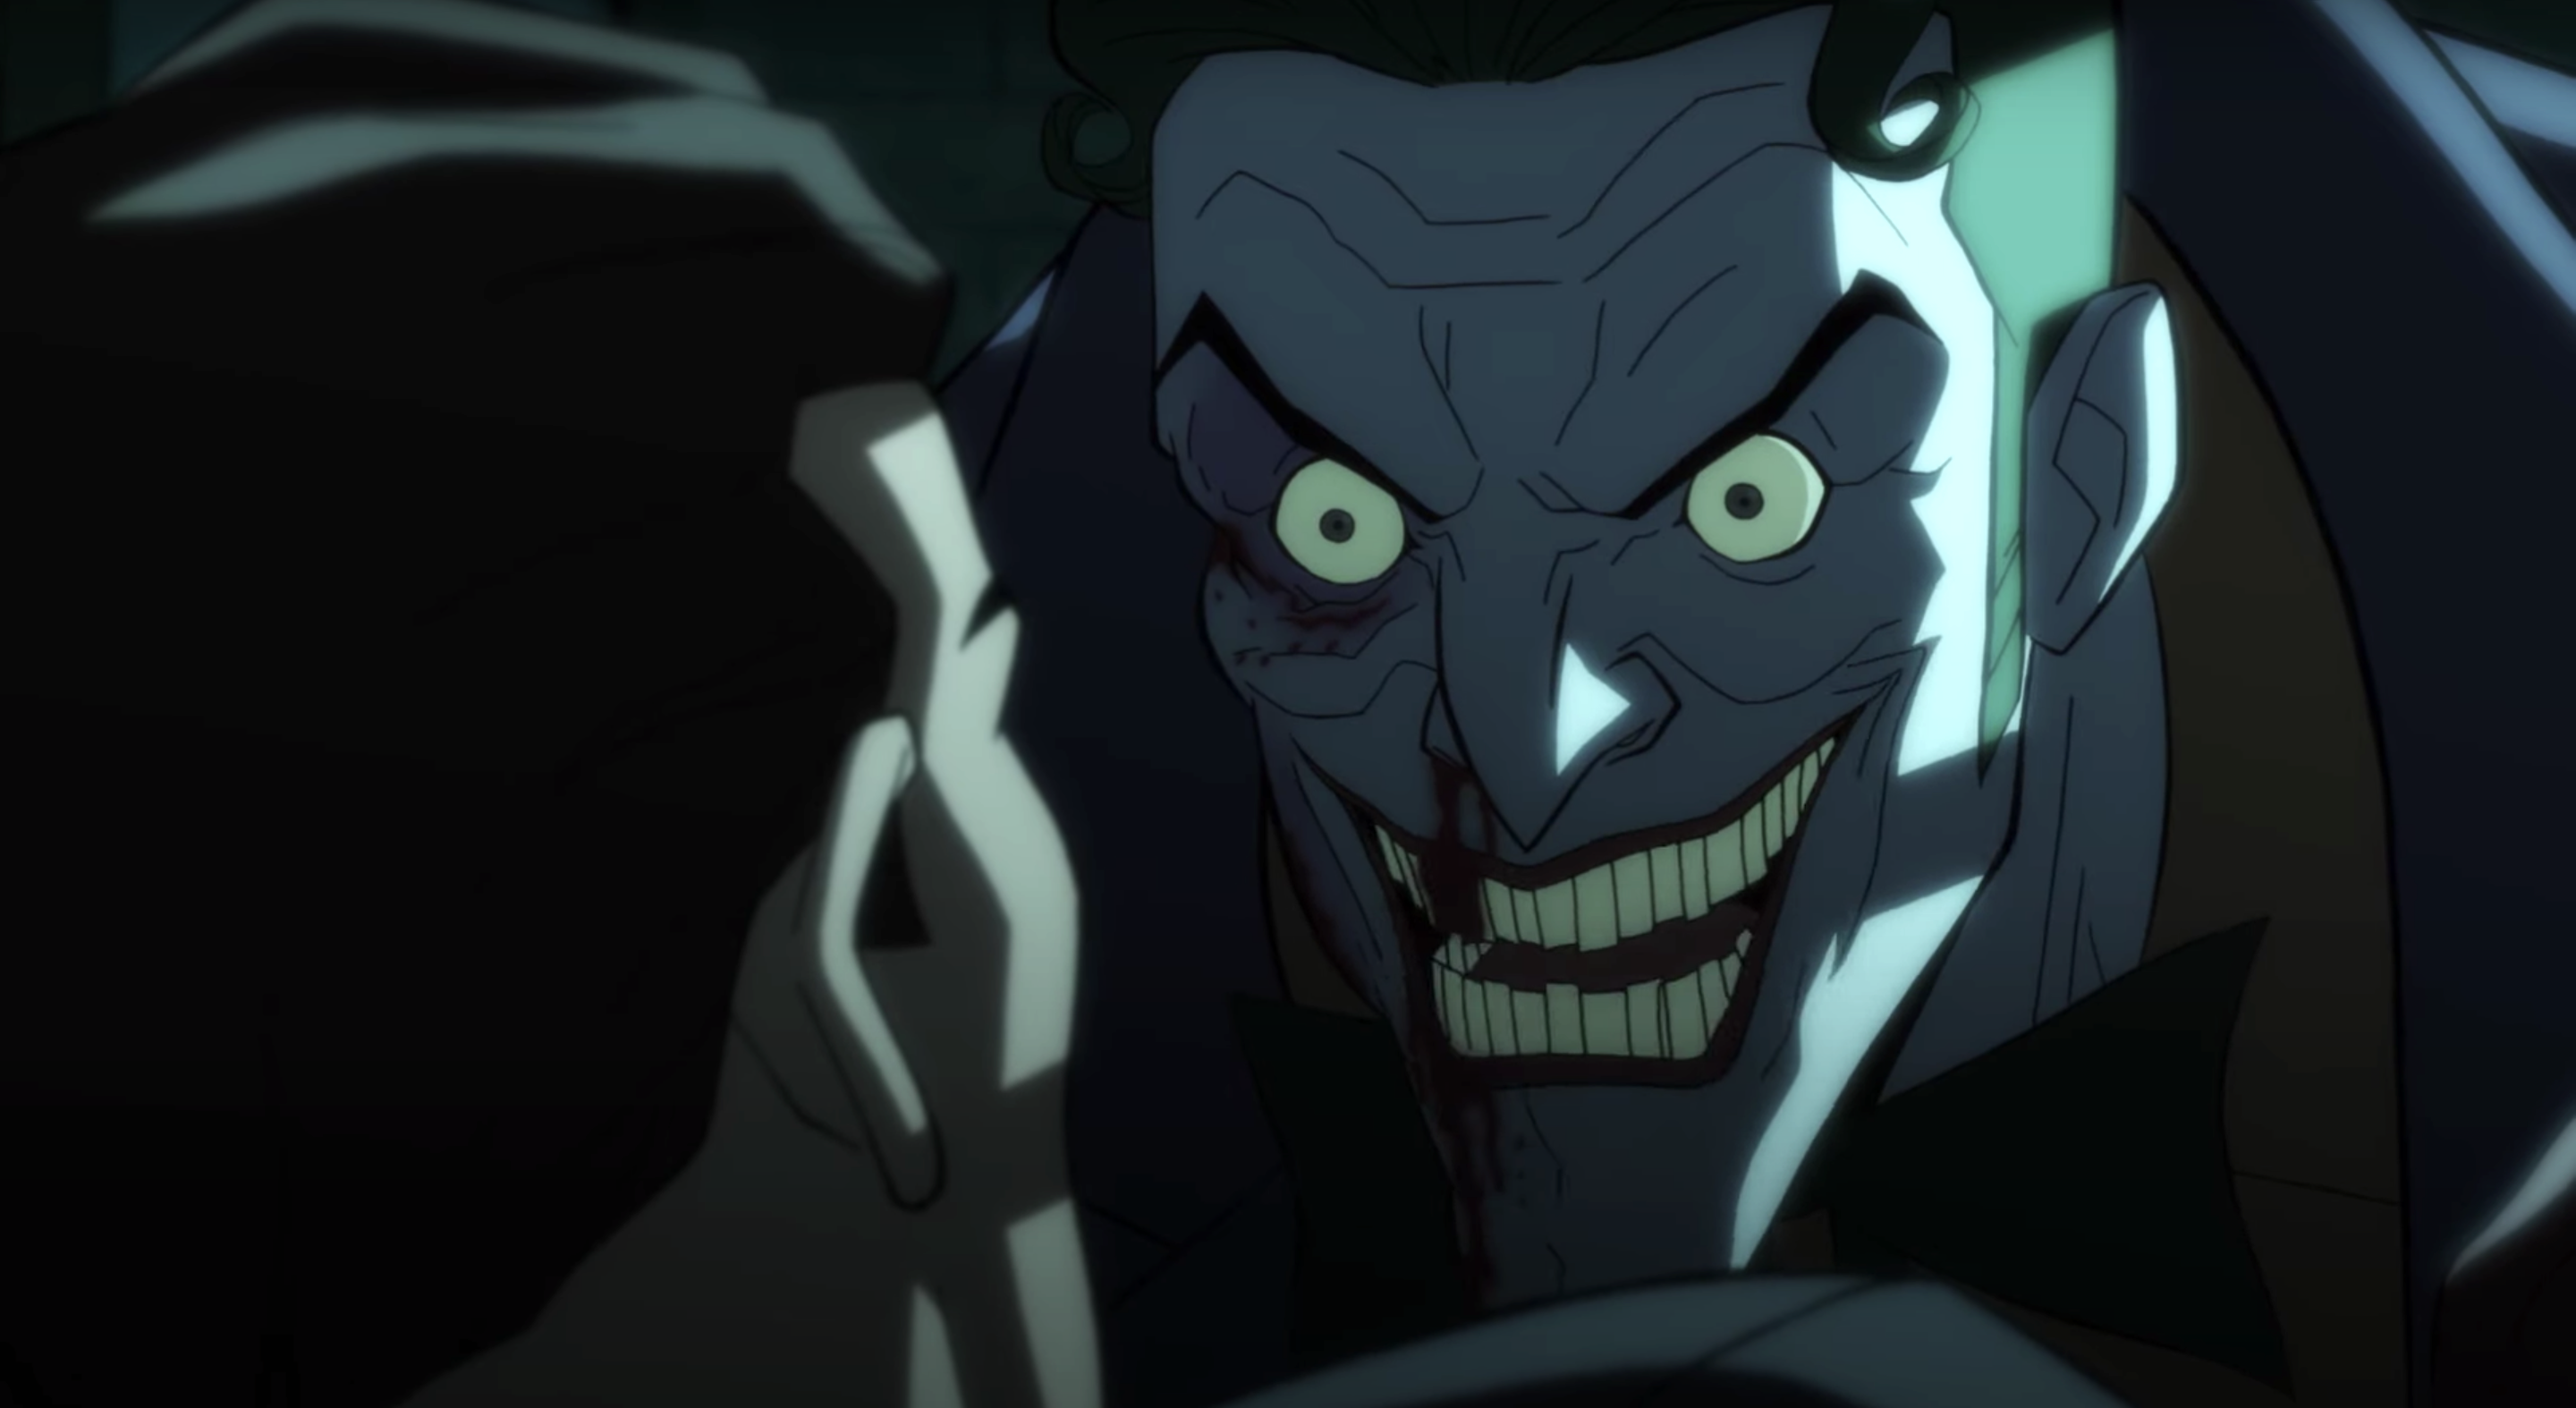 The Joker grins maniacally at a victim in The Long Halloween movie.